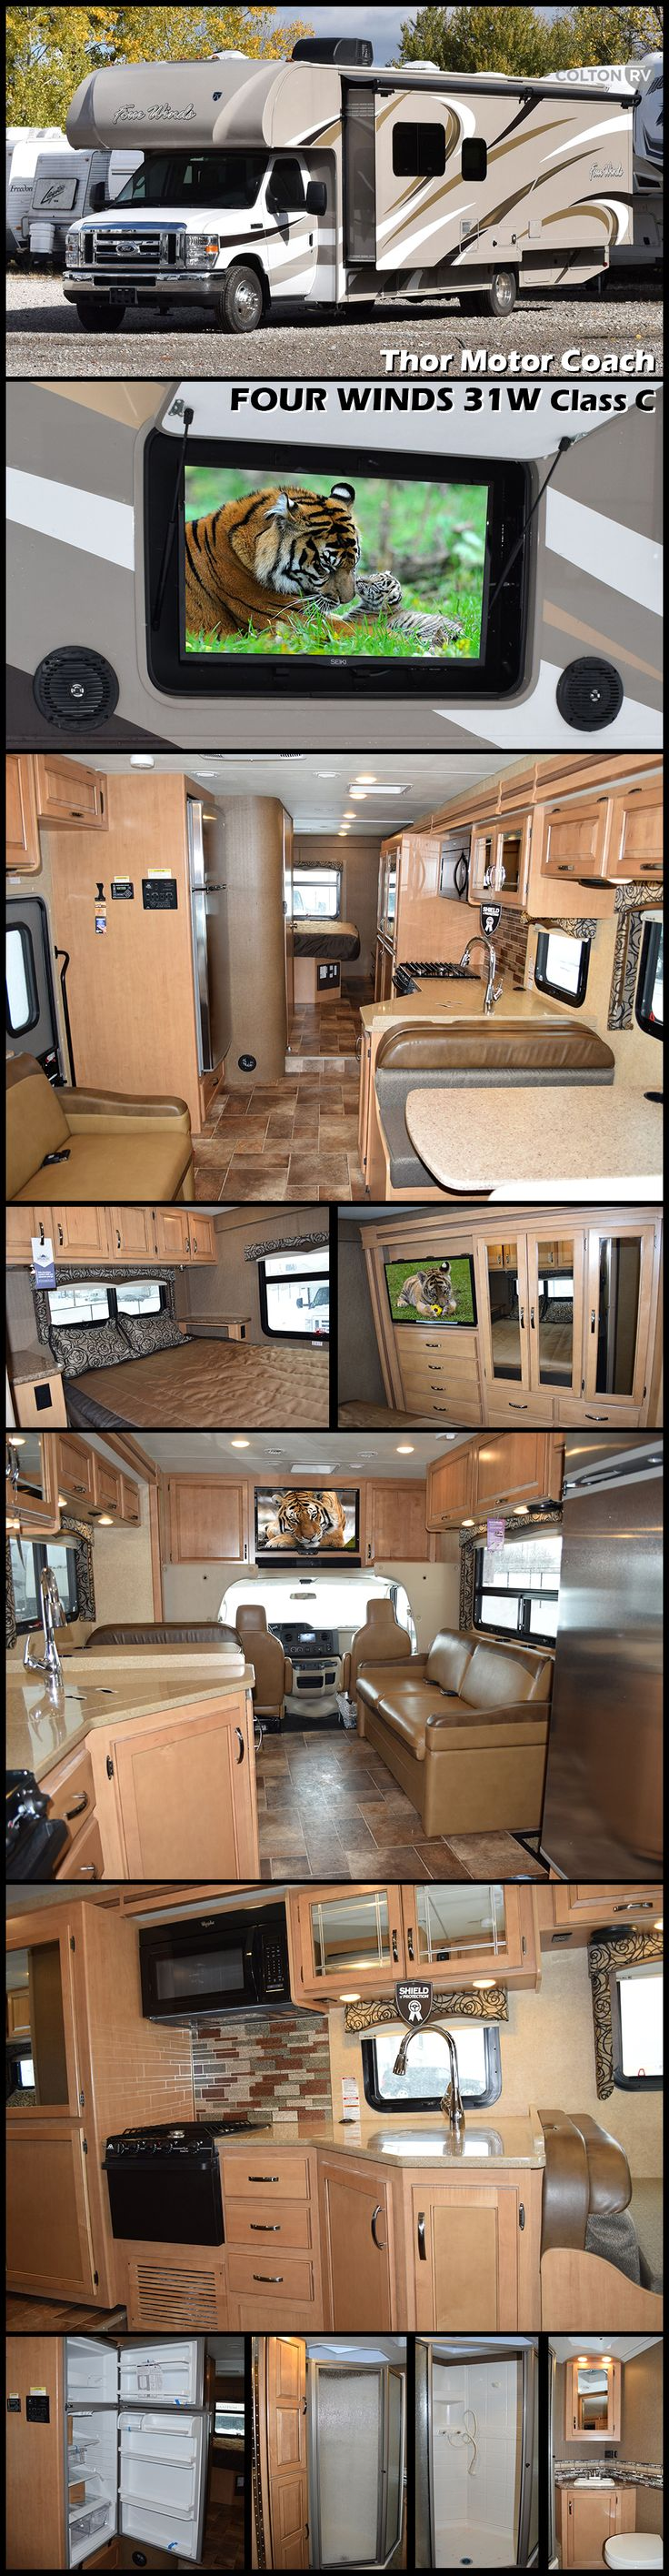 "FOUR WINDS 31W Class C Motorhome by THOR MOTOR COACH has all the conveniences of home. Featuring a large full wall slide, cab over bunk for the kiddies, plus a 40"" swivel TV and rear bedroom with a queen size bed and much more!"